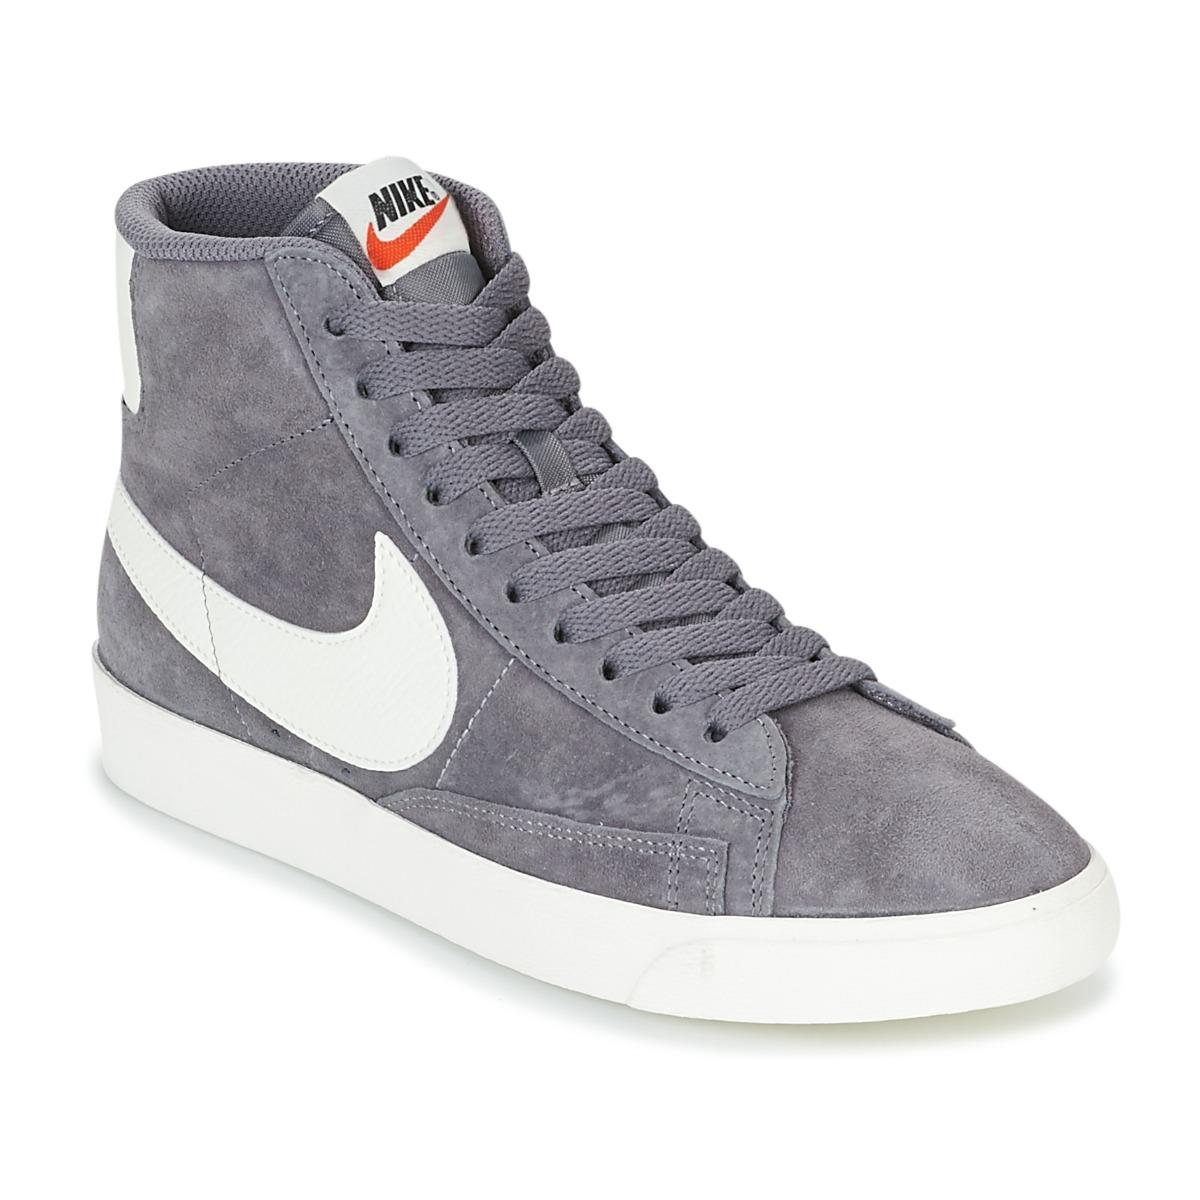 cdacb16897876 ... release date nike blazer mid suede vintage w womens shoes high top  trainers in 44b69 1ede8